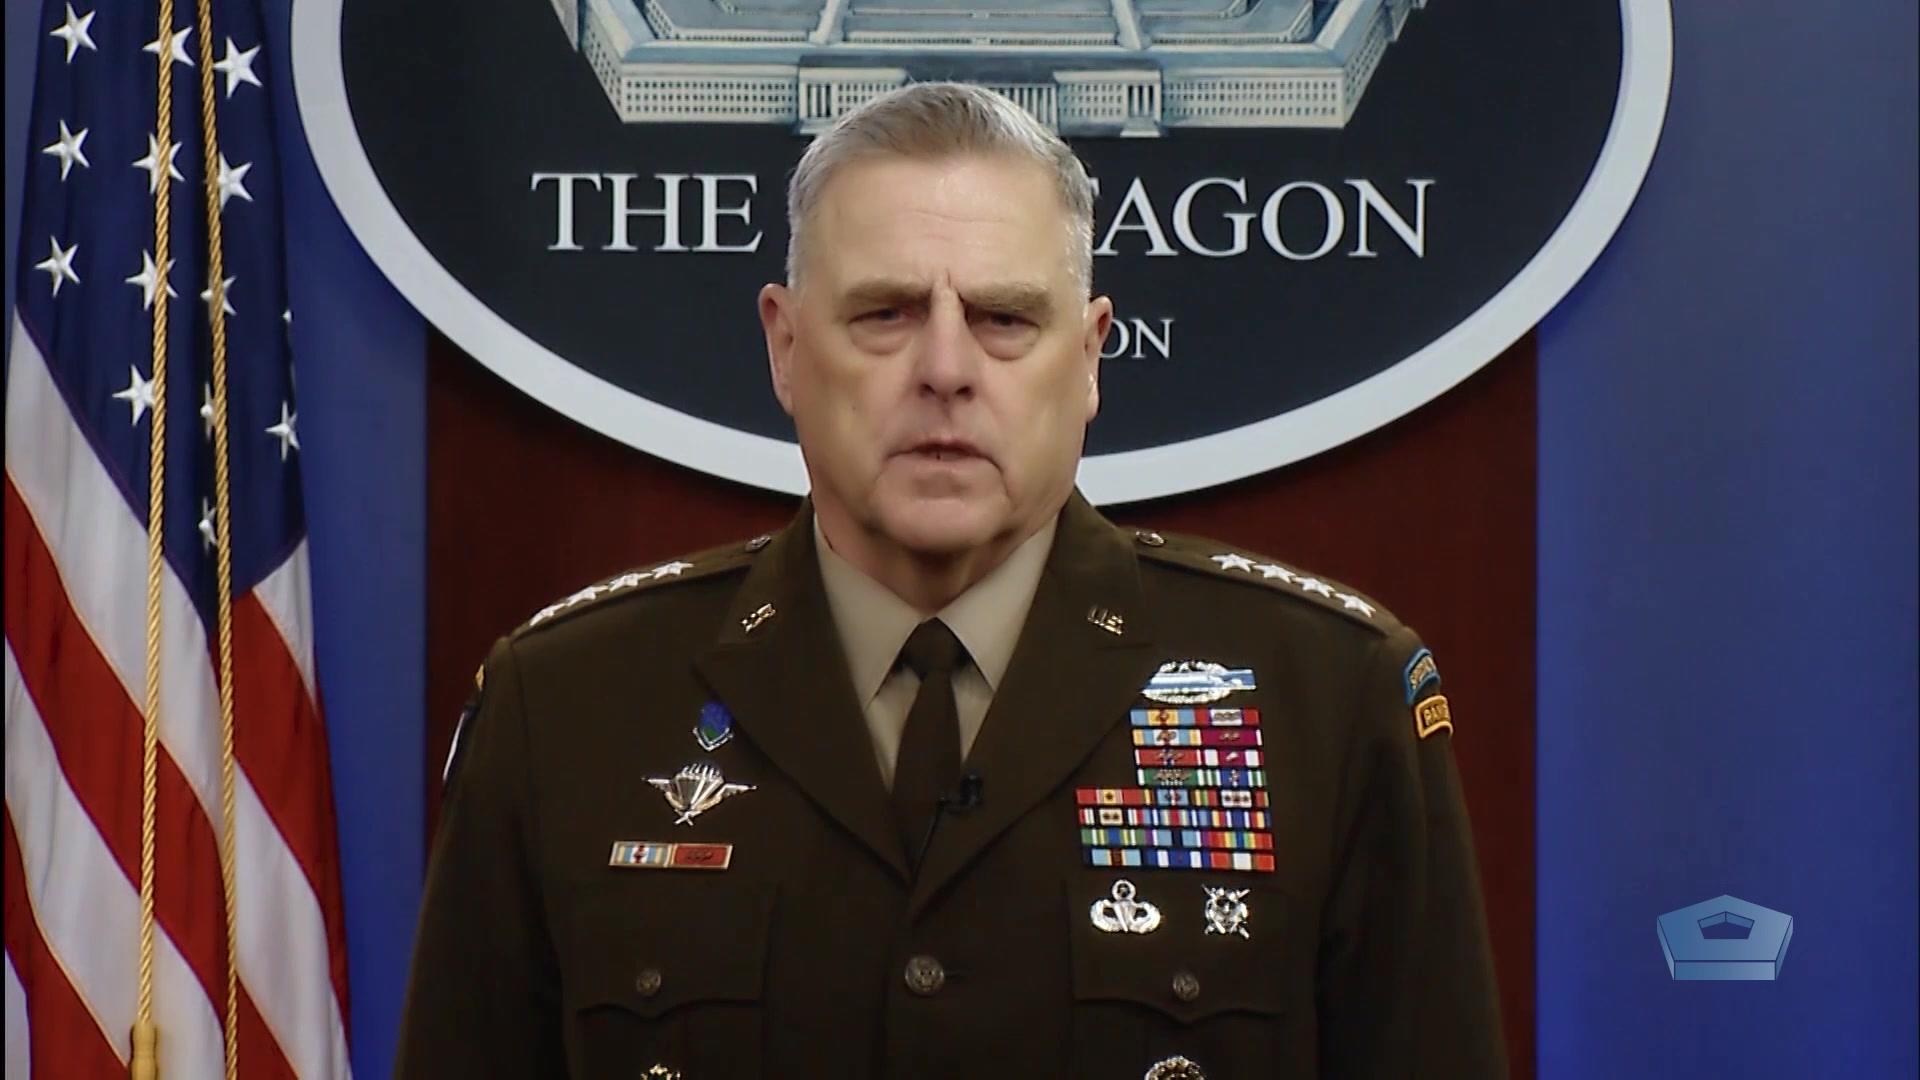 Caption:  Chairman of the Joint Chiefs of Staff Army Gen. Mark A. Milley addresses the nation on the 75th anniversary of V-E Day.